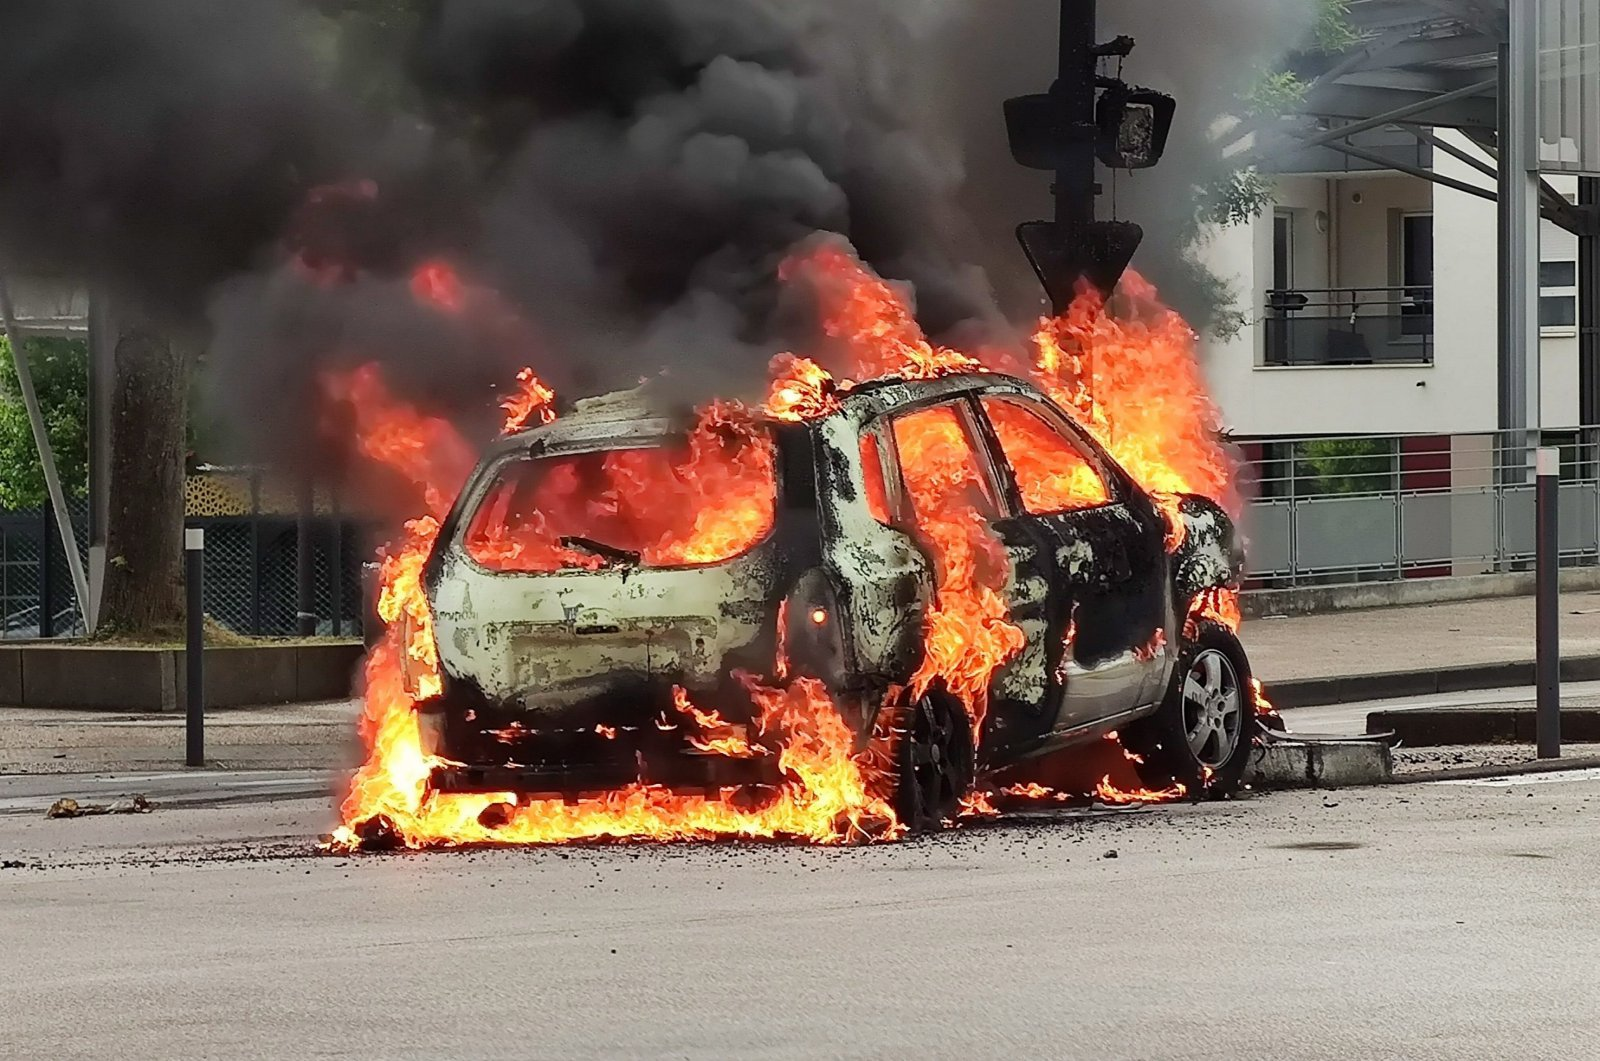 A car burns after scenes of violence in the Gresilles neighborhood in Dijon, France, June 15, 2020. (EPA Photo)